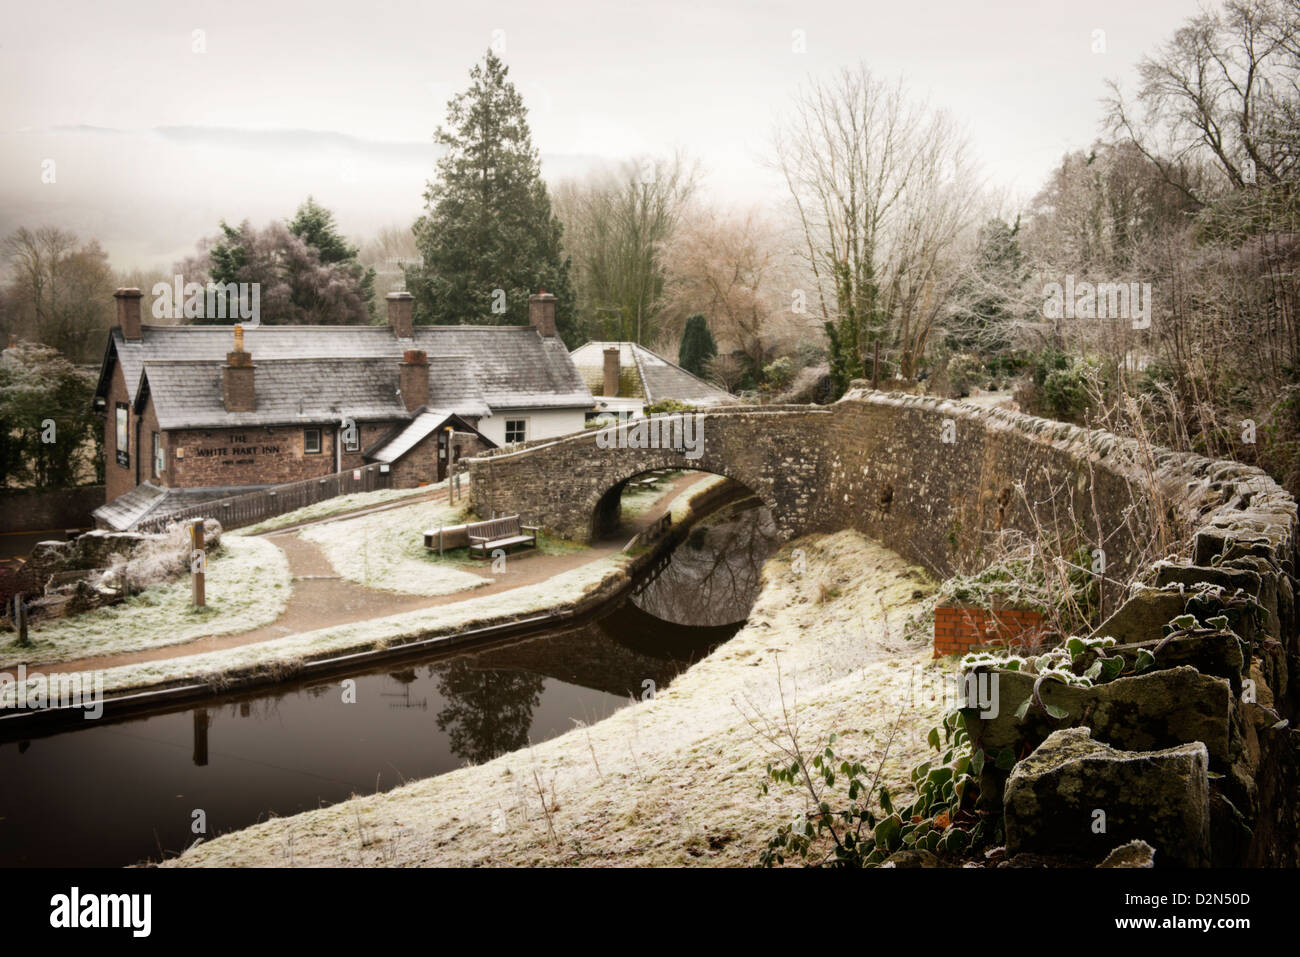 Brecon canal at Talybont on Usk, Powys, Wales, UK - Stock Image